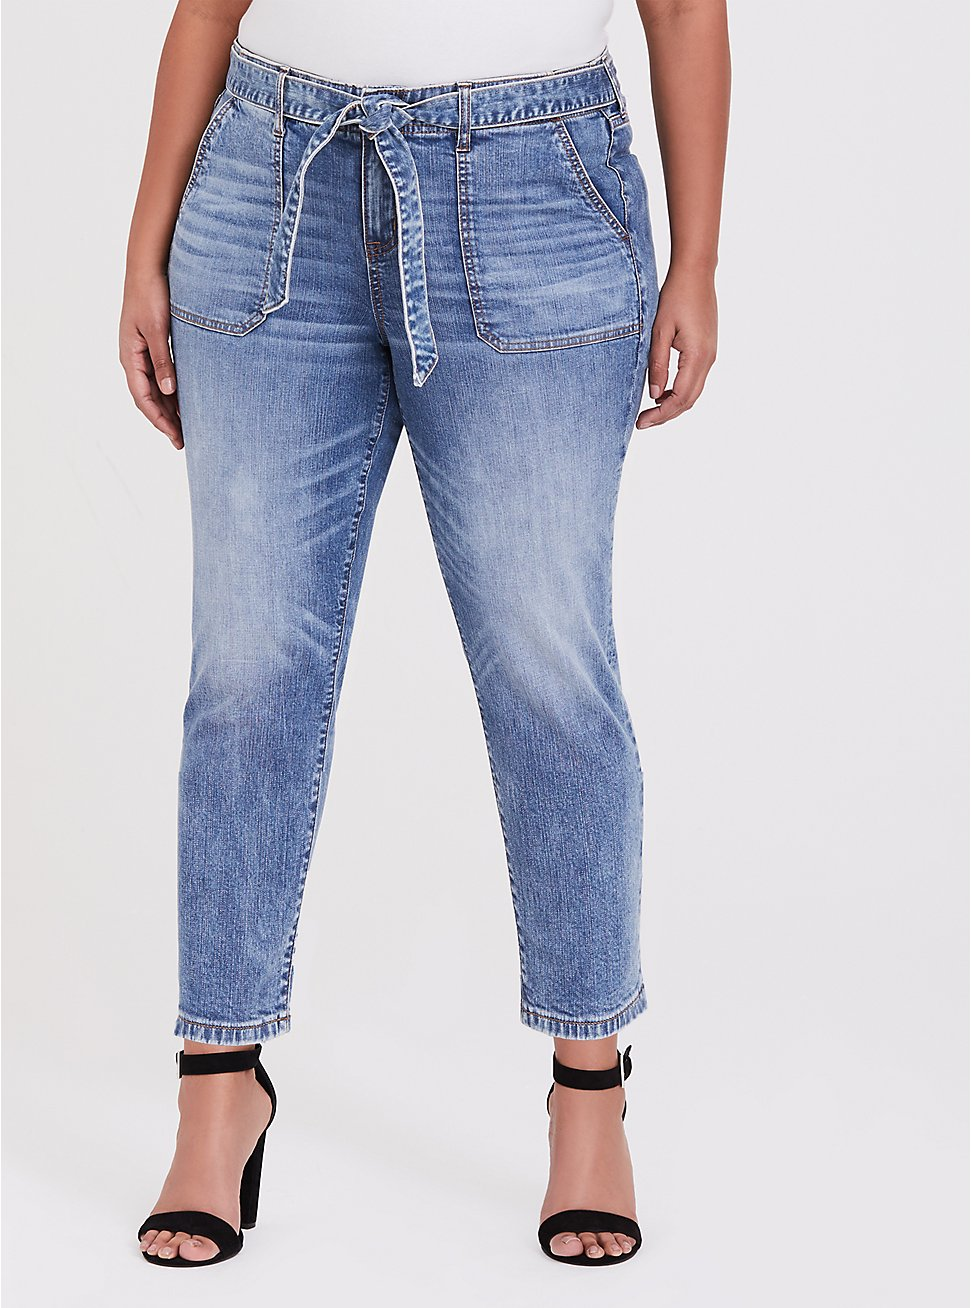 Mid Rise Straight Jean- Vintage Stretch Light Wash with Sash, SLOW MOTION, hi-res